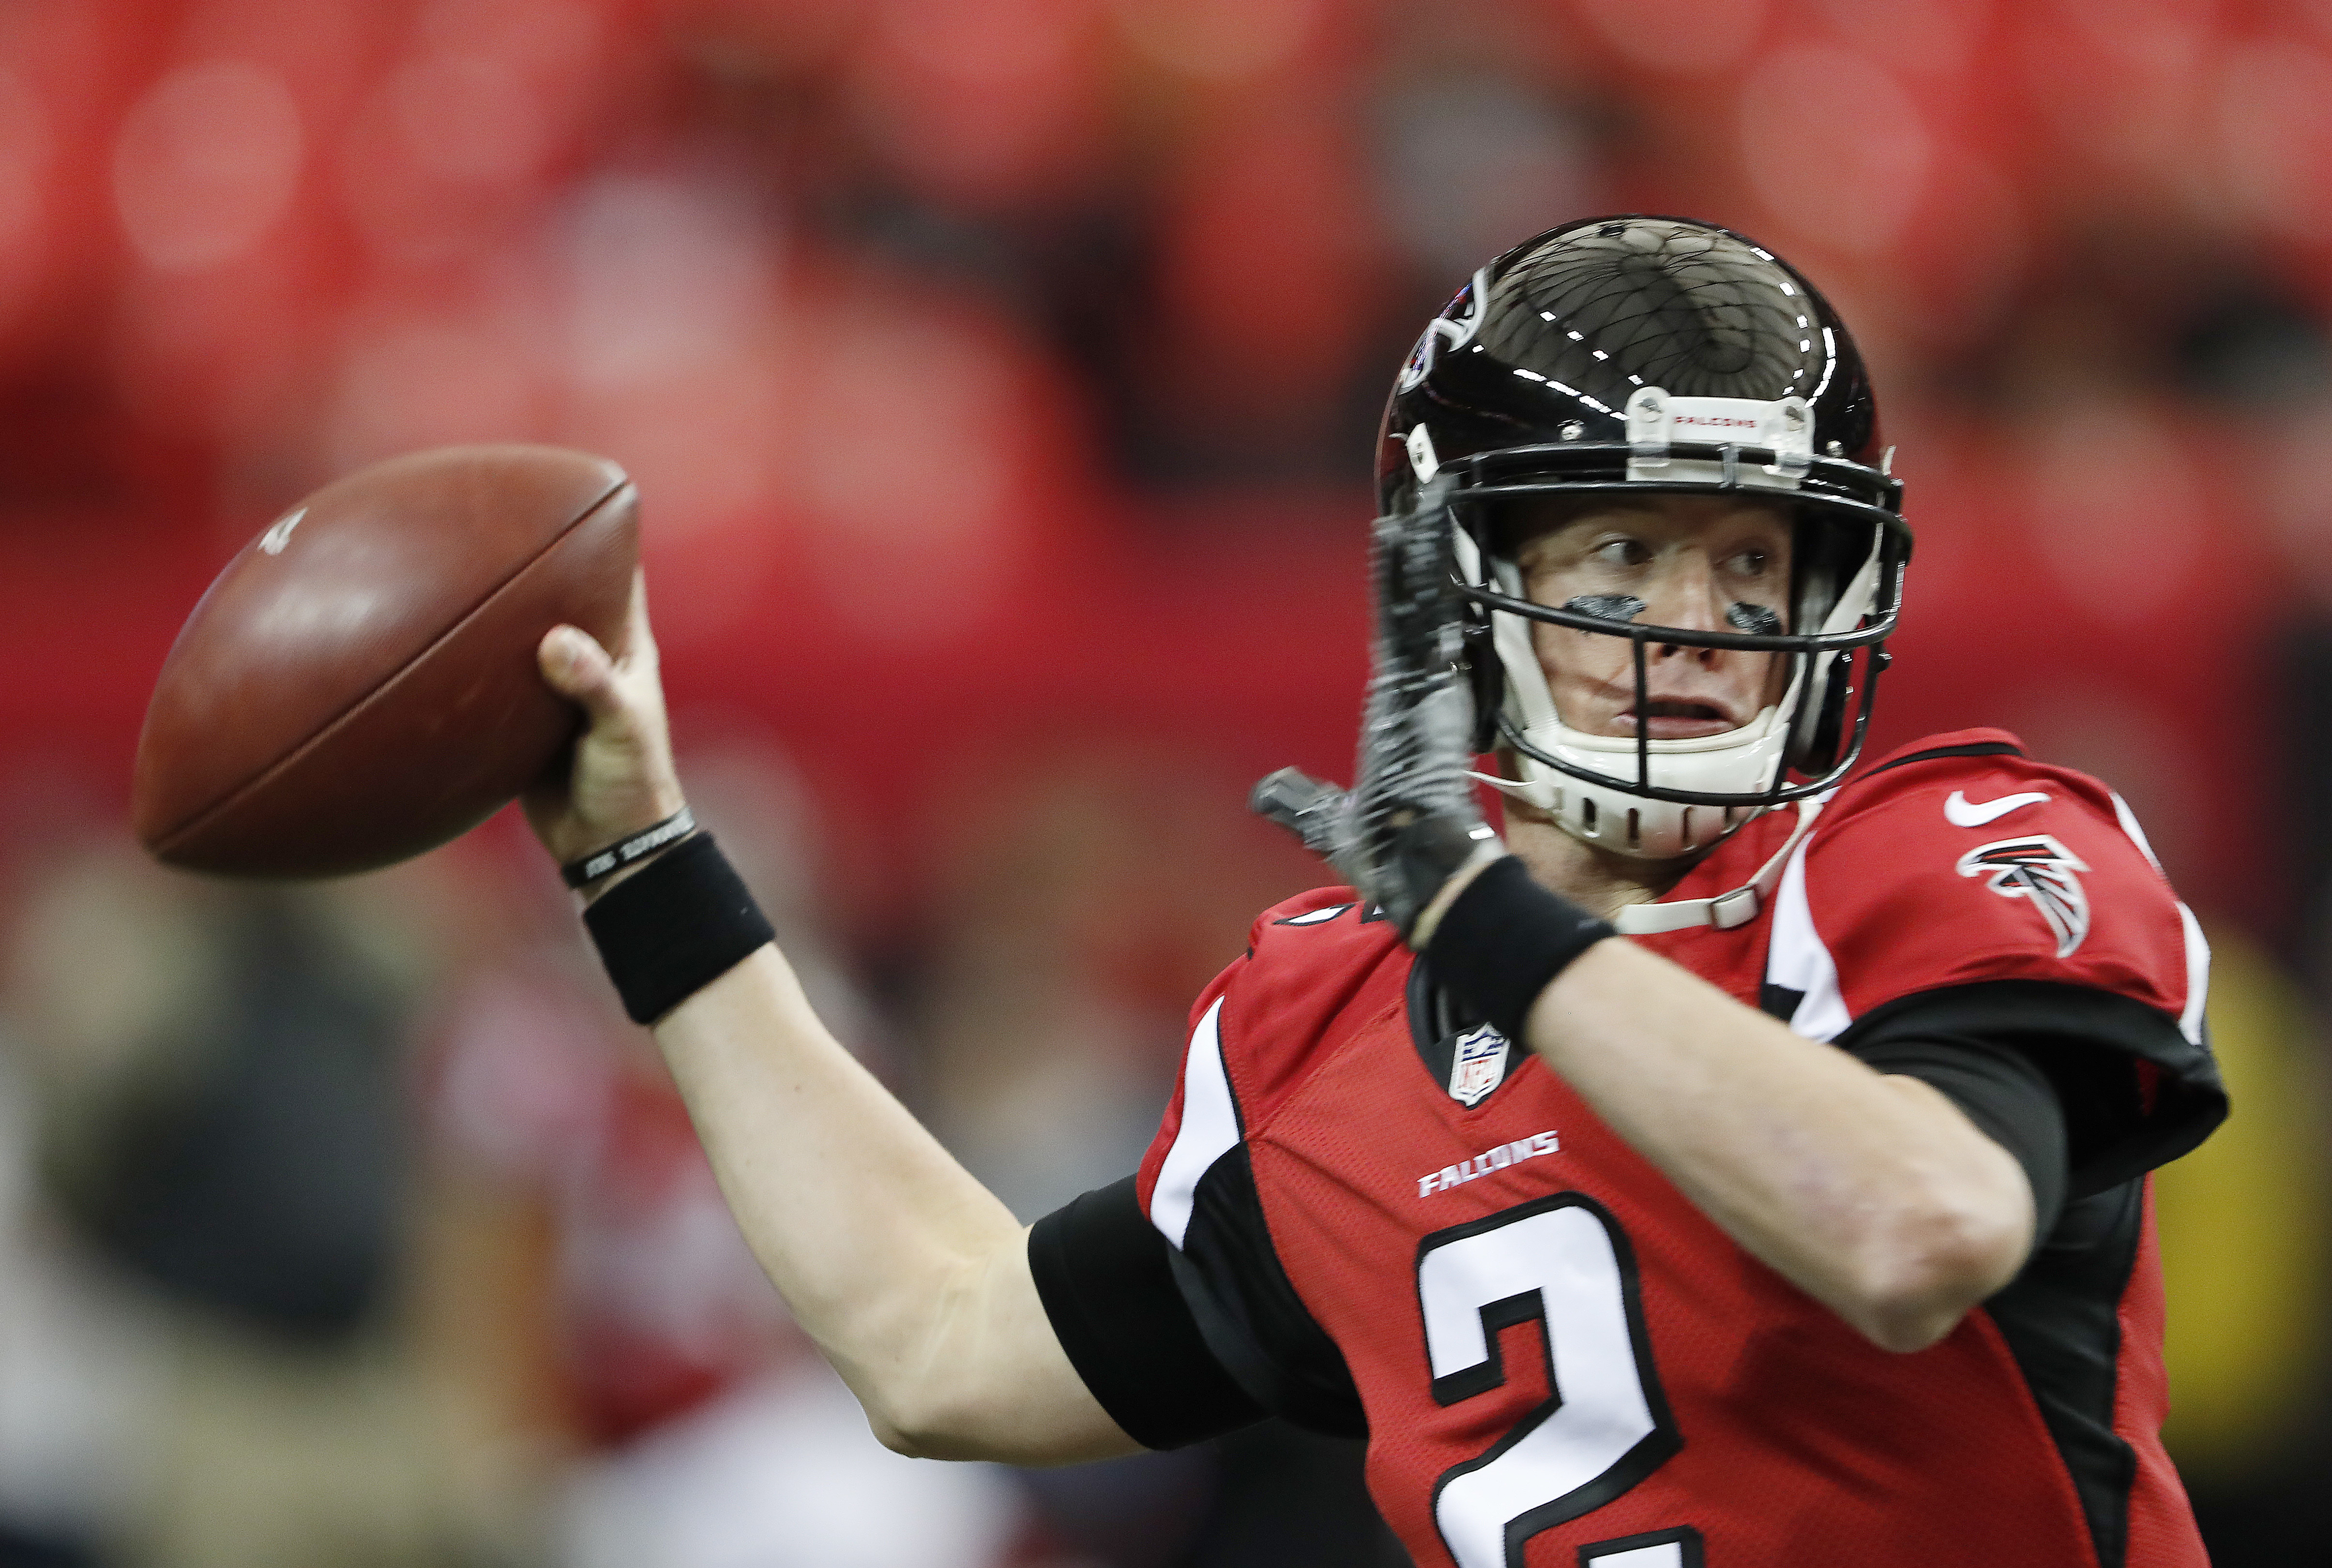 FILE - In this Sunday, Nov. 27, 2016 file photo, Atlanta Falcons quarterback Matt Ryan (2) warms up before the first of an NFL football game between the Atlanta Falcons and the Arizona Cardinals in Atlanta. When Jared Goff was preparing to become the No.